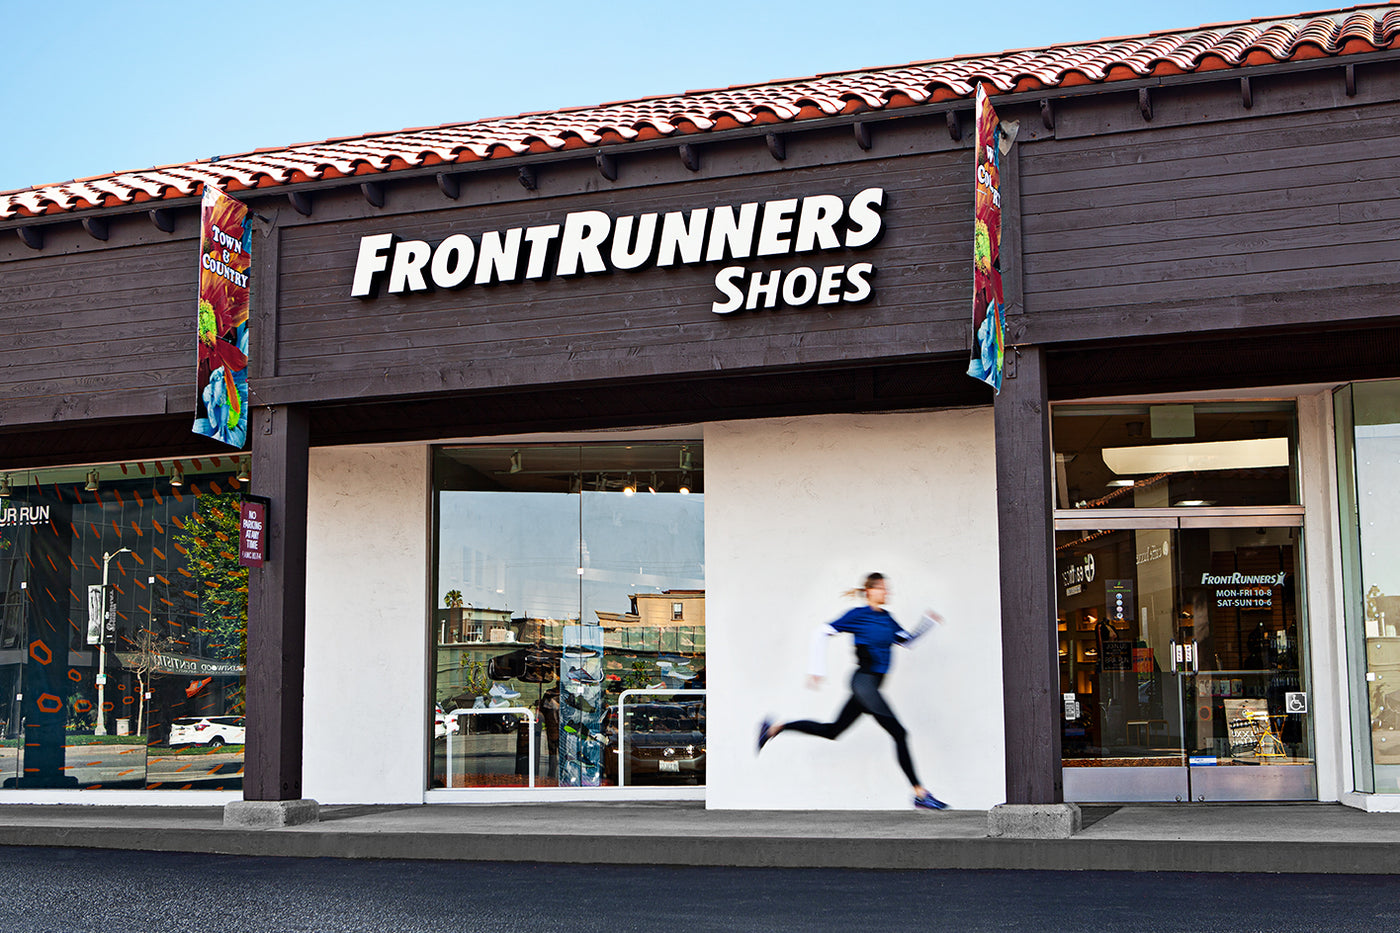 About Frontrunners